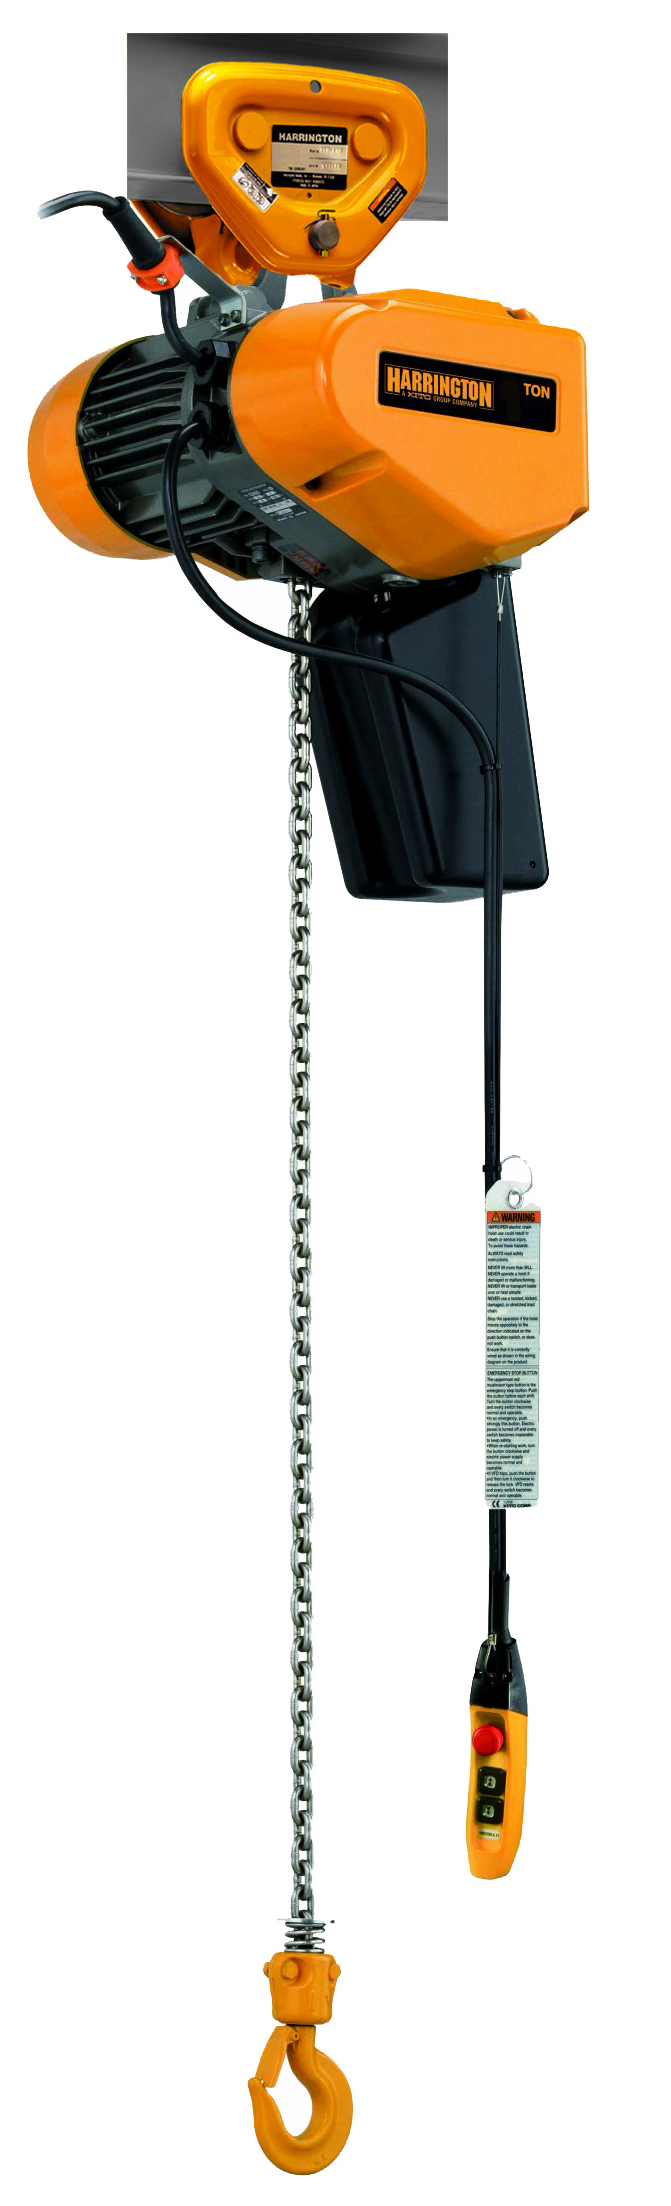 Harrington SEQ Single Phase Two-Speed Electric Chain Hoist with Push Trolley